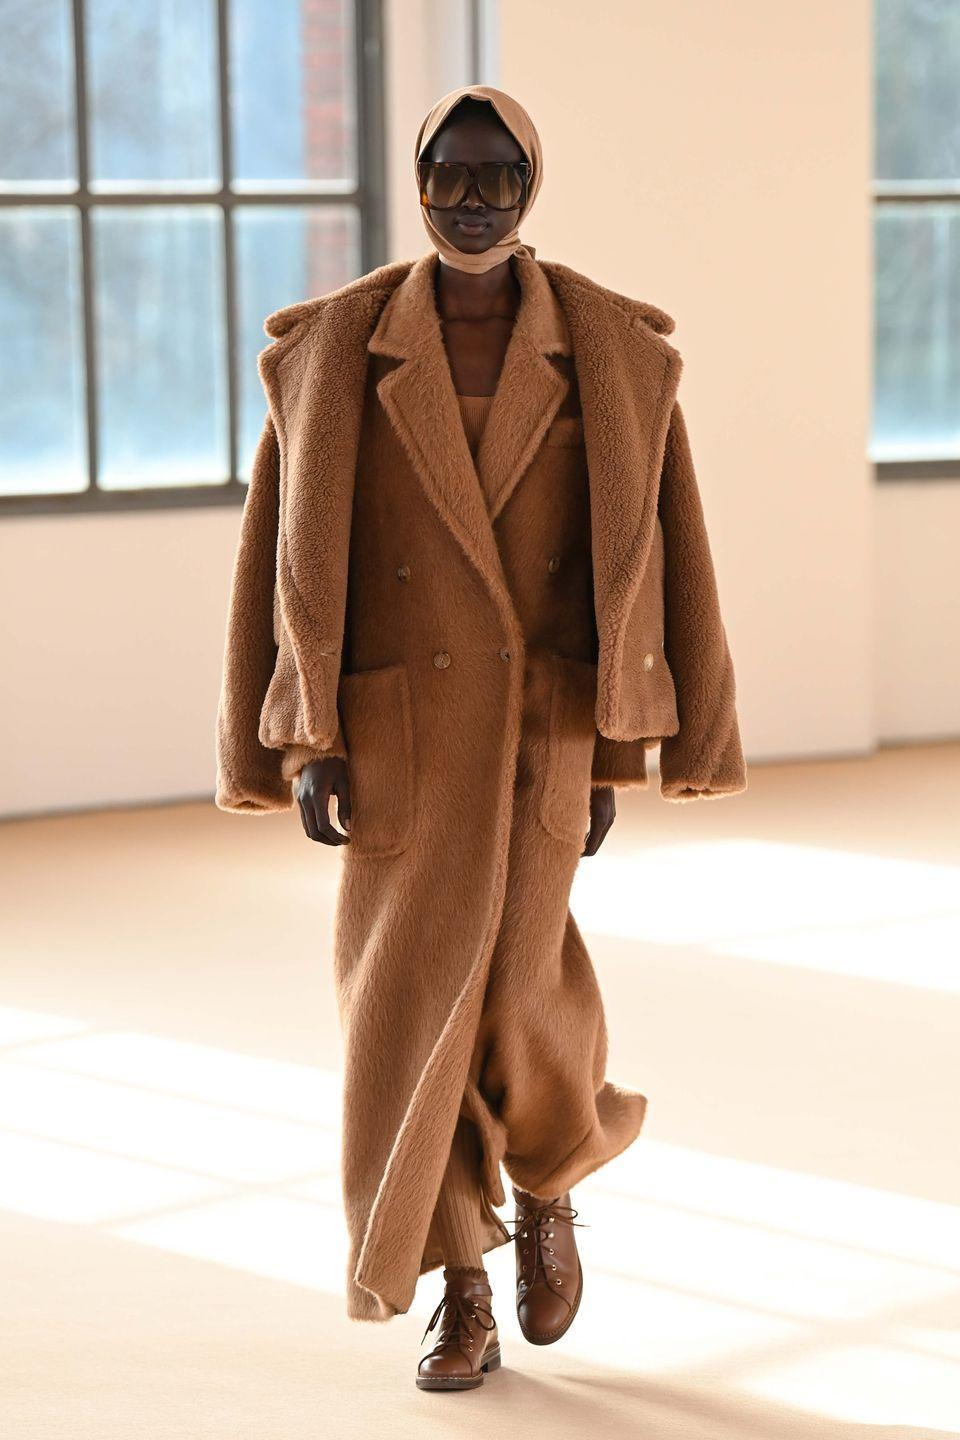 "<p>The autumn/winter 2021 collection marks the 70th anniversary of Max Mara, which, in its own words, has ""come a long way since 1951"" – but is still embracing the same aesthetic: ""Britannic style with an Italian accent; authentic, sometimes eccentric. It's been a recurring theme at Max Mara right from the start and it's the backbone of the anniversary collection.""</p>"